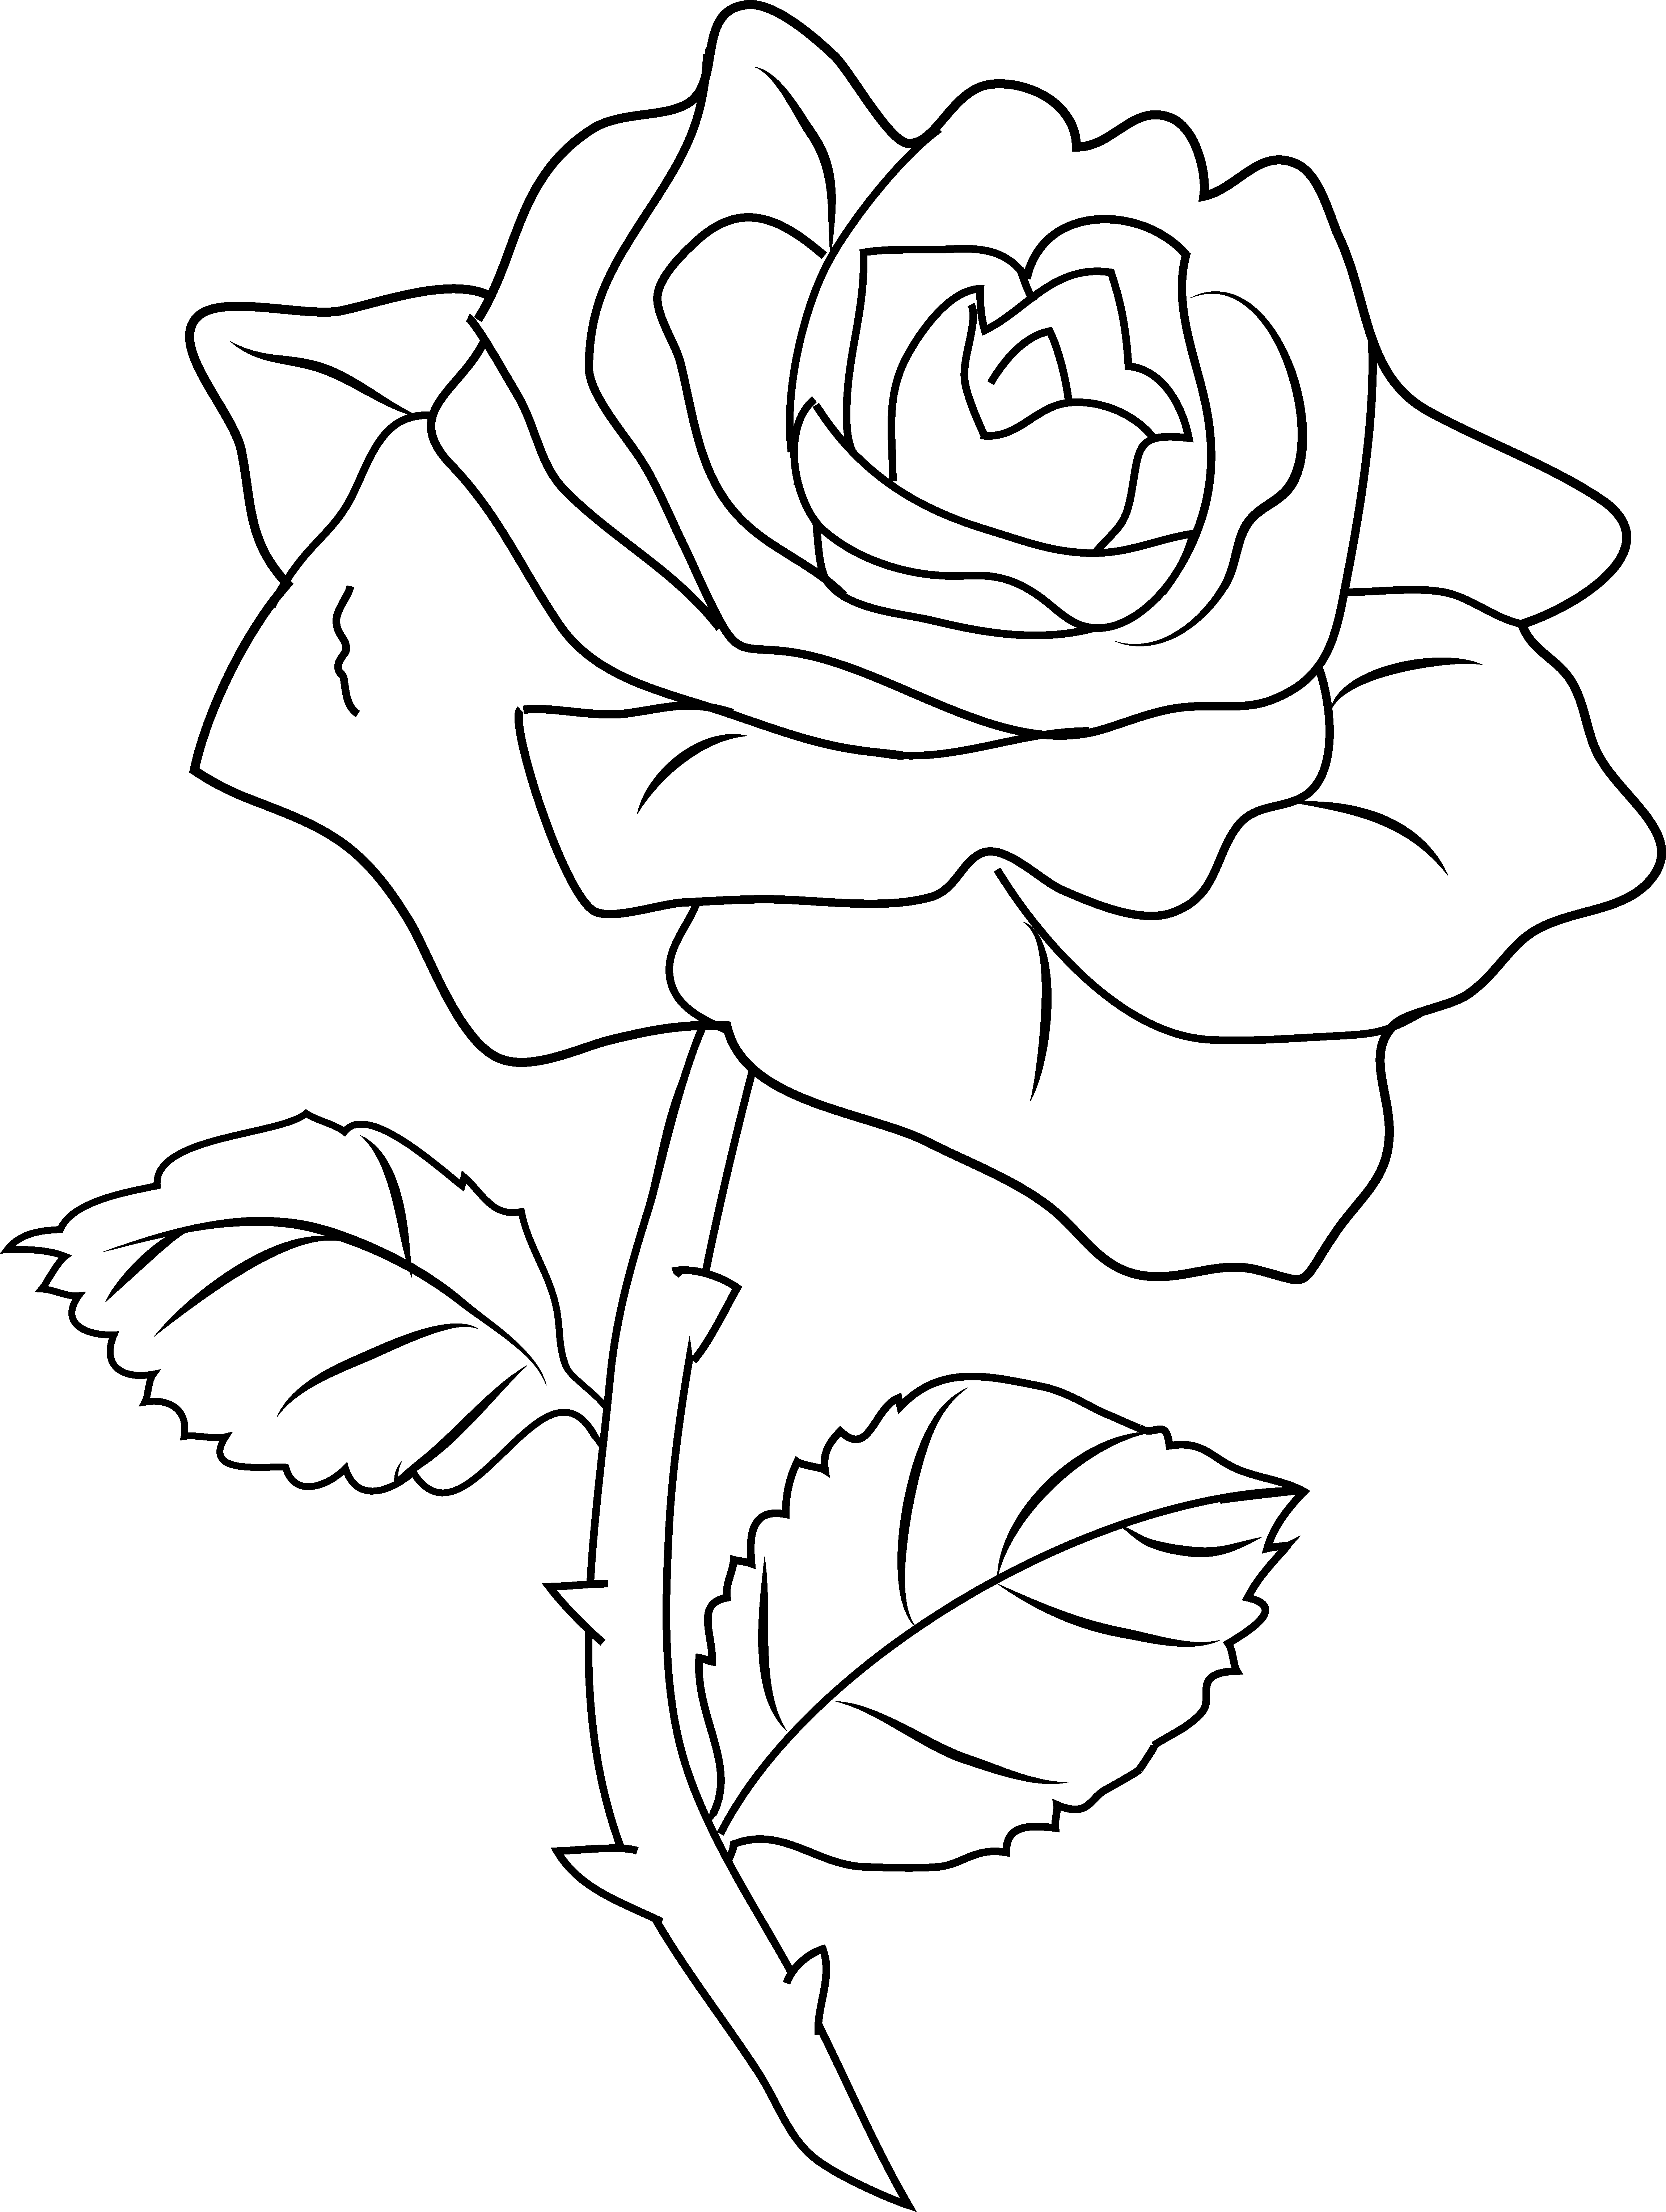 pics of roses to color 271 best images about rose art coloring pages on pics to color of roses